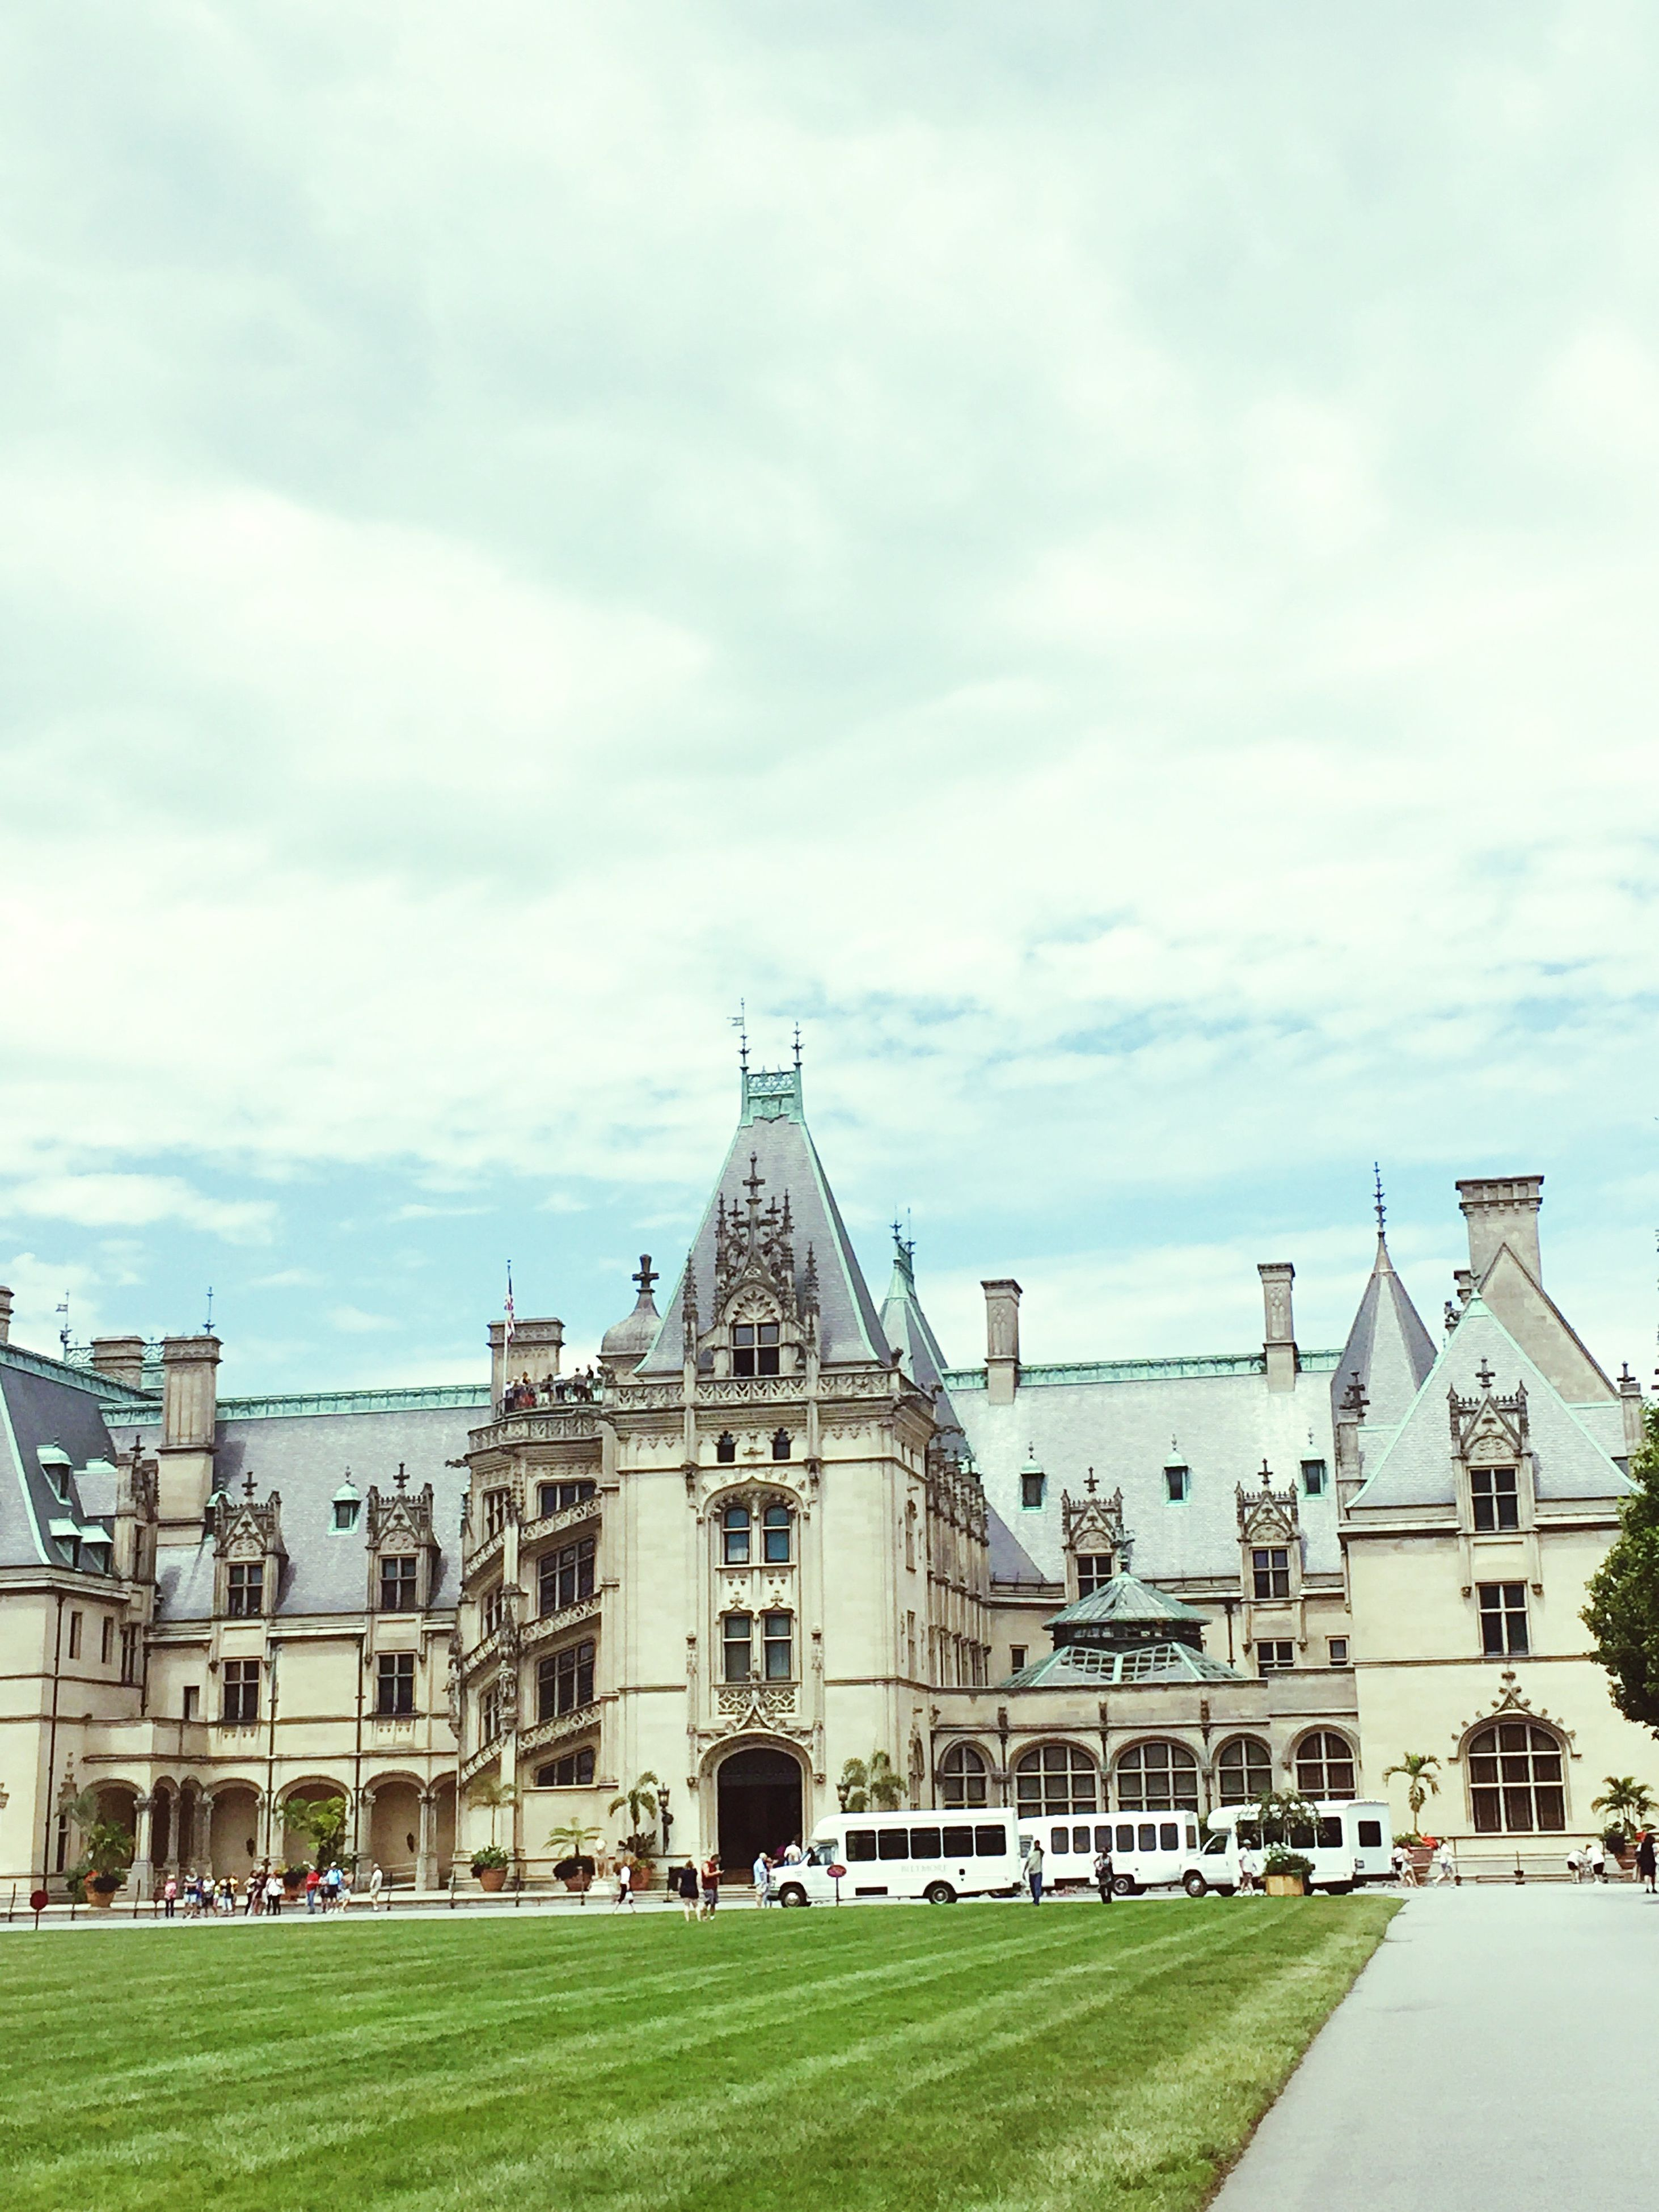 architecture, built structure, sky, grass, cloud - sky, cloudy, cloud, day, outdoors, lawn, green color, no people, facade, travel destinations, nature, exterior, grassy, overcast, blue